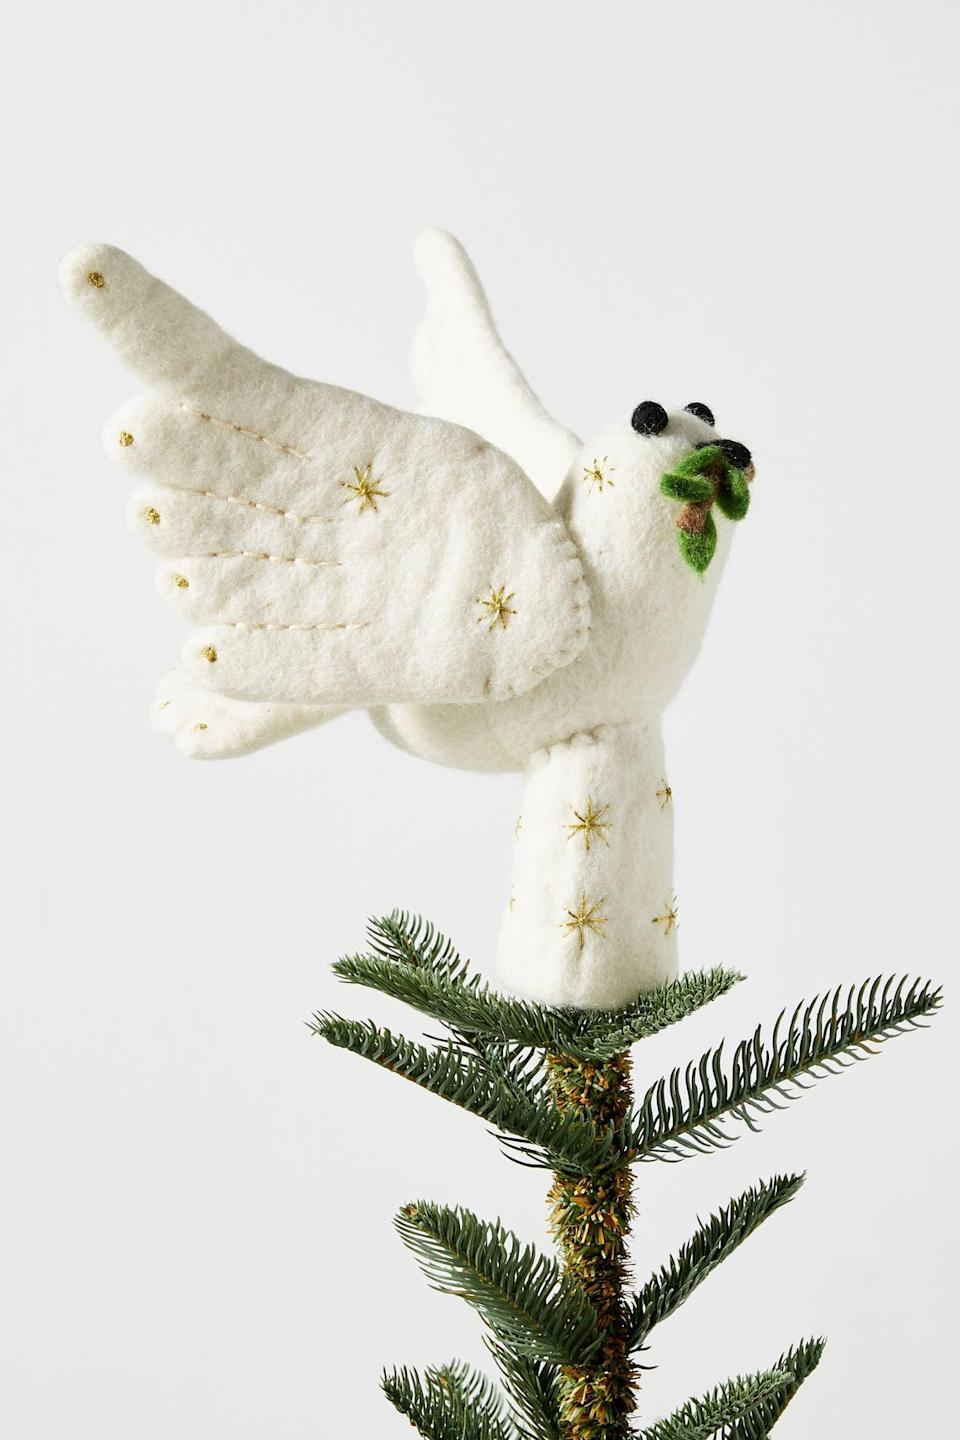 """<p>Complete any holiday tree with the delightful <a href=""""https://www.popsugar.com/buy/Felted-Dove-Tree-Topper-490480?p_name=Felted%20Dove%20Tree%20Topper&retailer=anthropologie.com&pid=490480&price=42&evar1=casa%3Aus&evar9=46615300&evar98=https%3A%2F%2Fwww.popsugar.com%2Fhome%2Fphoto-gallery%2F46615300%2Fimage%2F46615350%2FFelted-Dove-Tree-Topper&list1=shopping%2Canthropologie%2Choliday%2Cchristmas%2Cchristmas%20decorations%2Choliday%20decor%2Chome%20shopping&prop13=mobile&pdata=1"""" rel=""""nofollow noopener"""" class=""""link rapid-noclick-resp"""" target=""""_blank"""" data-ylk=""""slk:Felted Dove Tree Topper"""">Felted Dove Tree Topper</a> ($42) on top.</p>"""